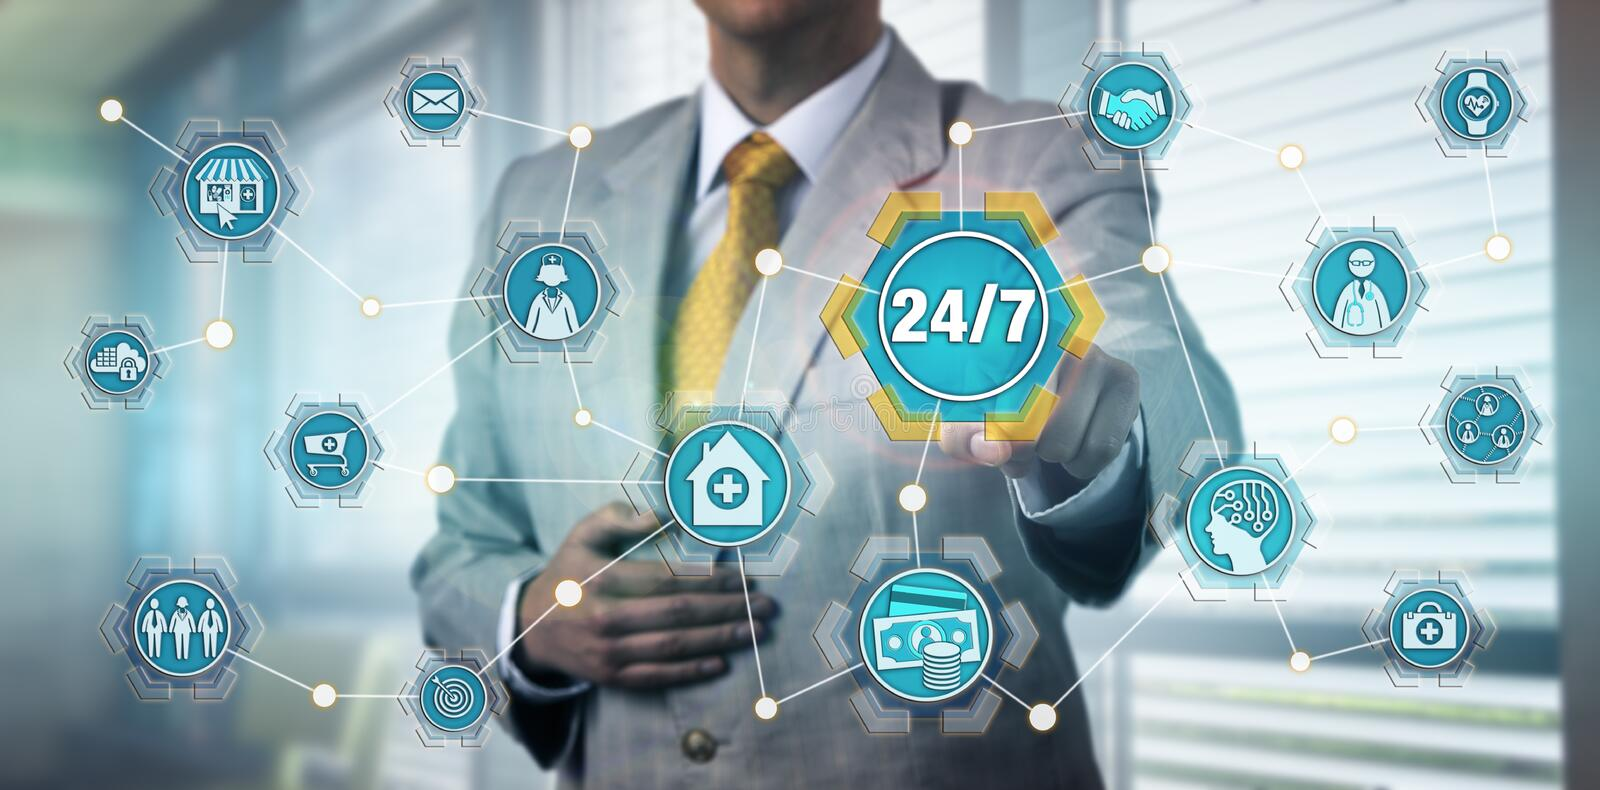 Healthcare Manager Touching 24/7 Service Button royalty free stock image